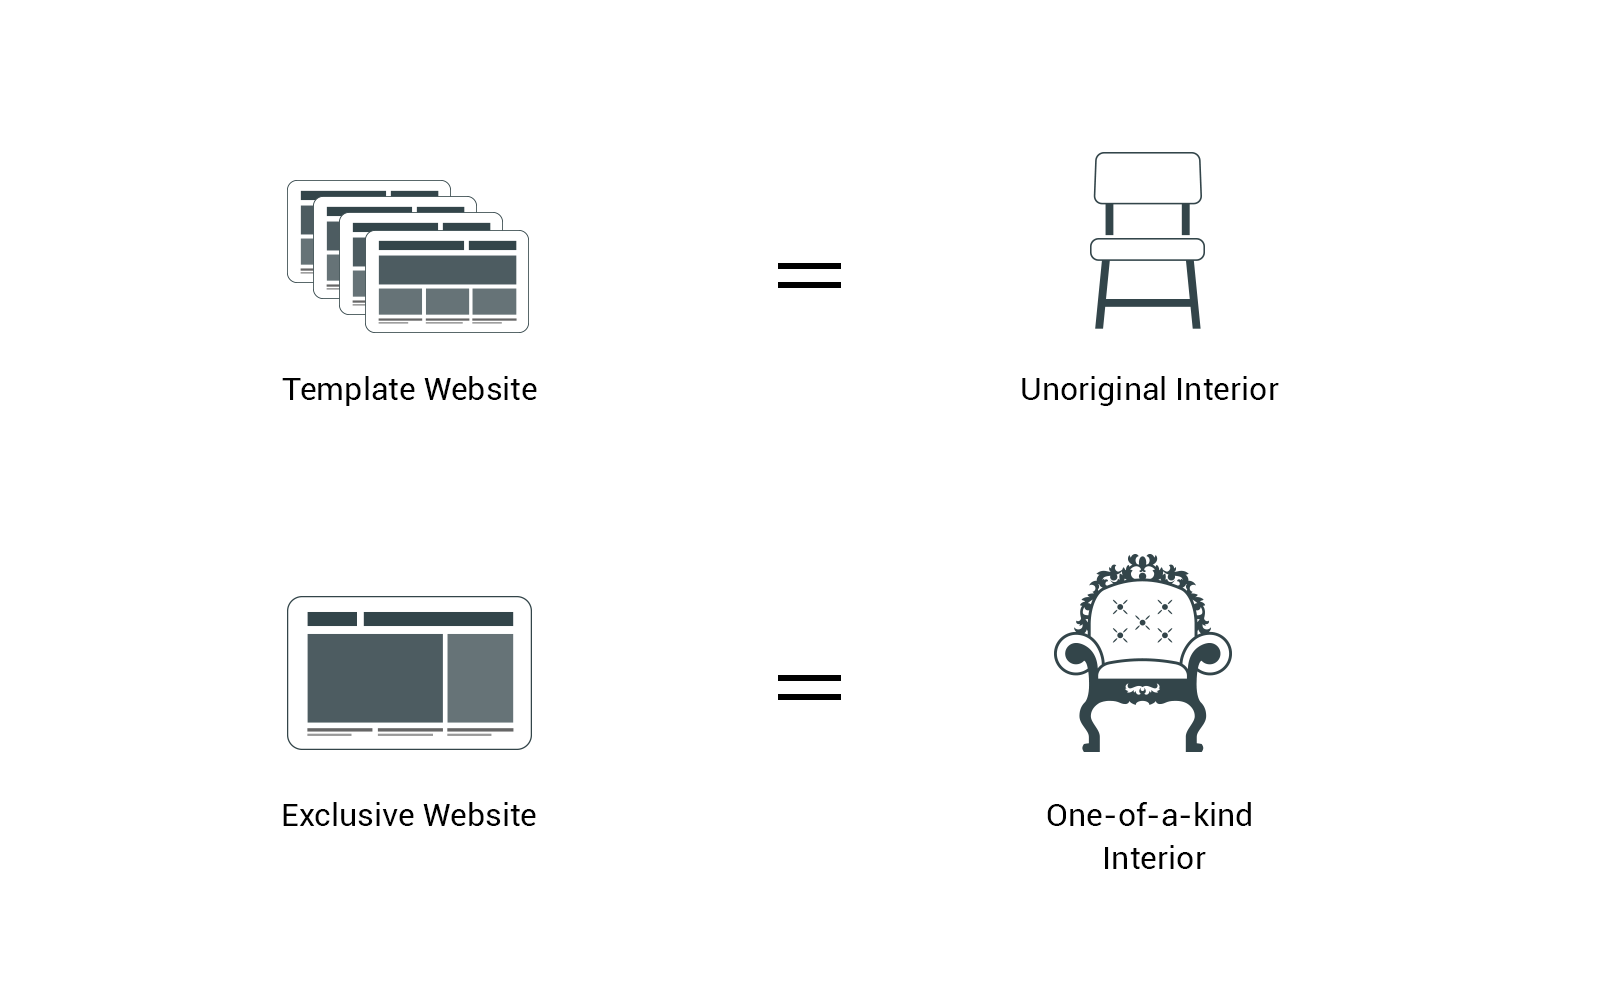 Website image impacts the client's service expectation